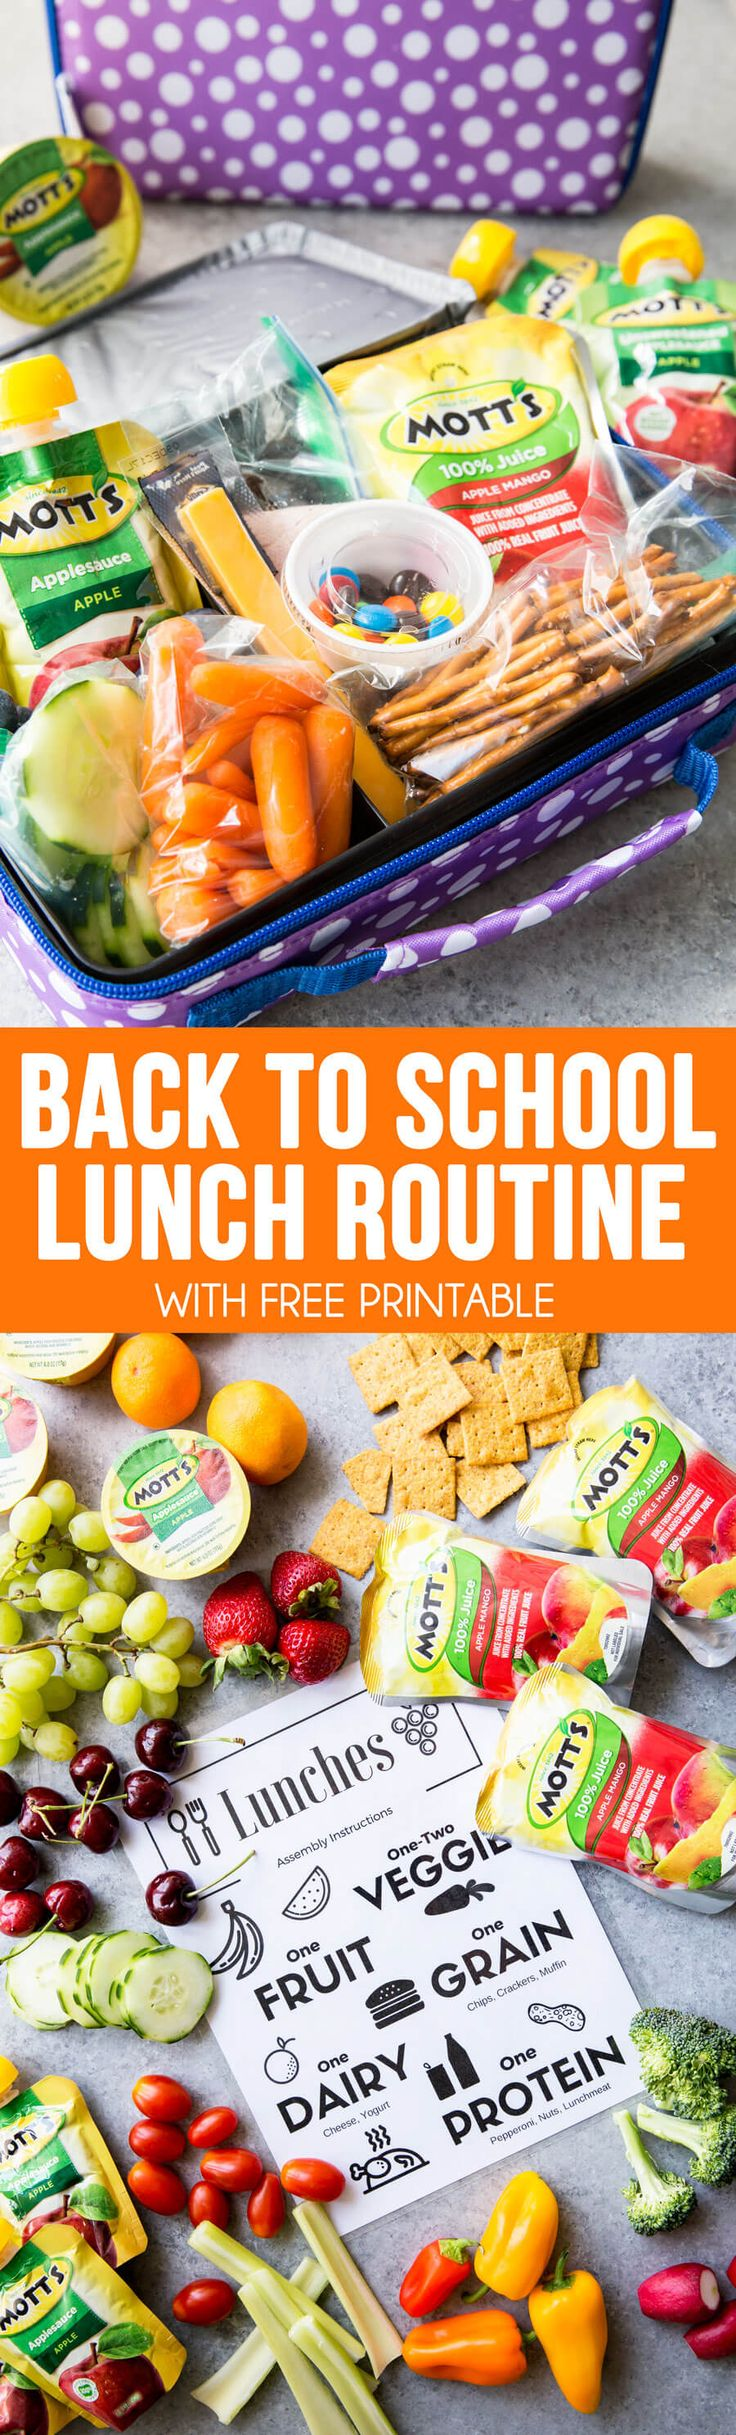 Back to School Lunch Routines, an easy way to get your kid's to pack their own lunches for back to school, with healthy options. Includes free printable. #ad #backtoschool #kidslunches #schoollunch